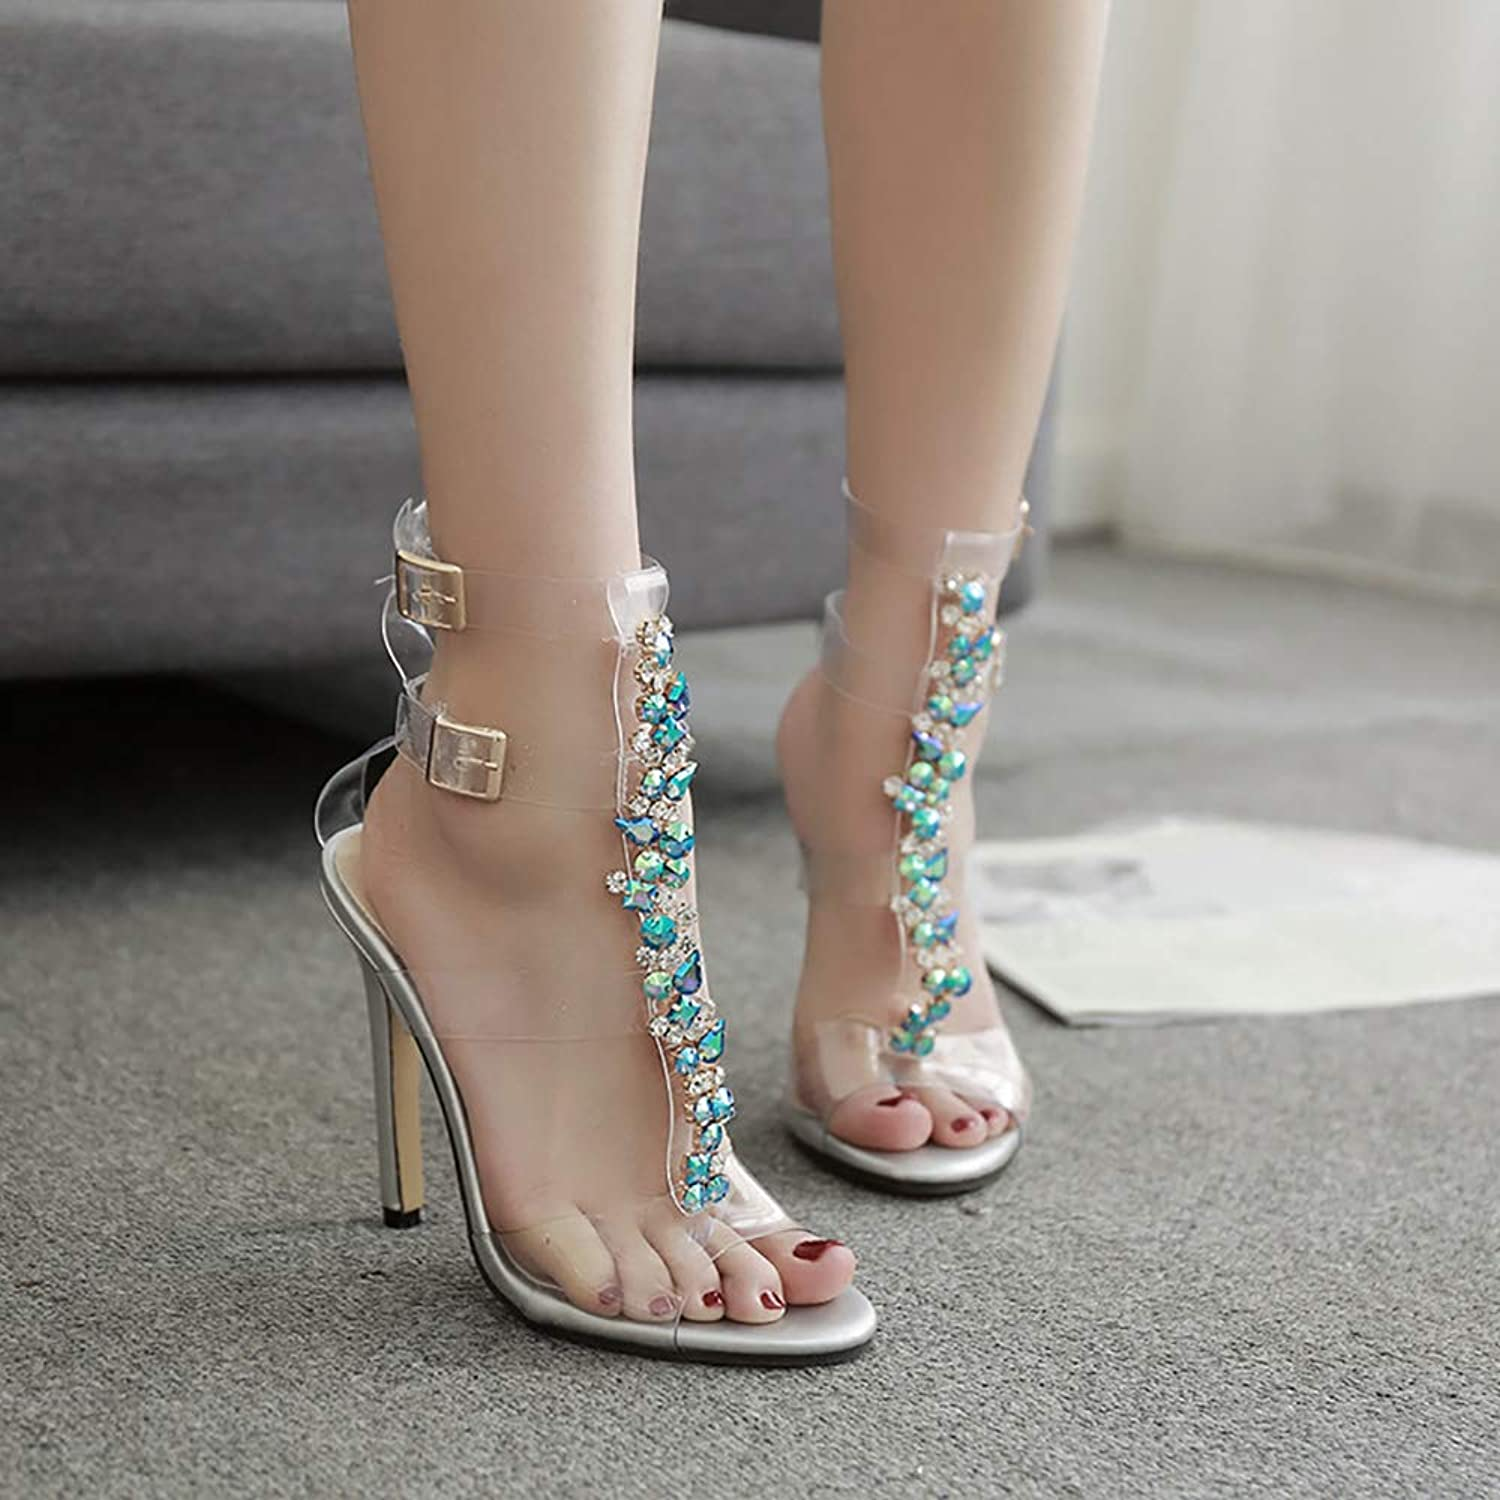 High Heel Sandals, Ankle Strap Open Toe Comfortable Party Heeled Sandals Strappy Cross Ankle Strap Classic Open Toe shoes,39